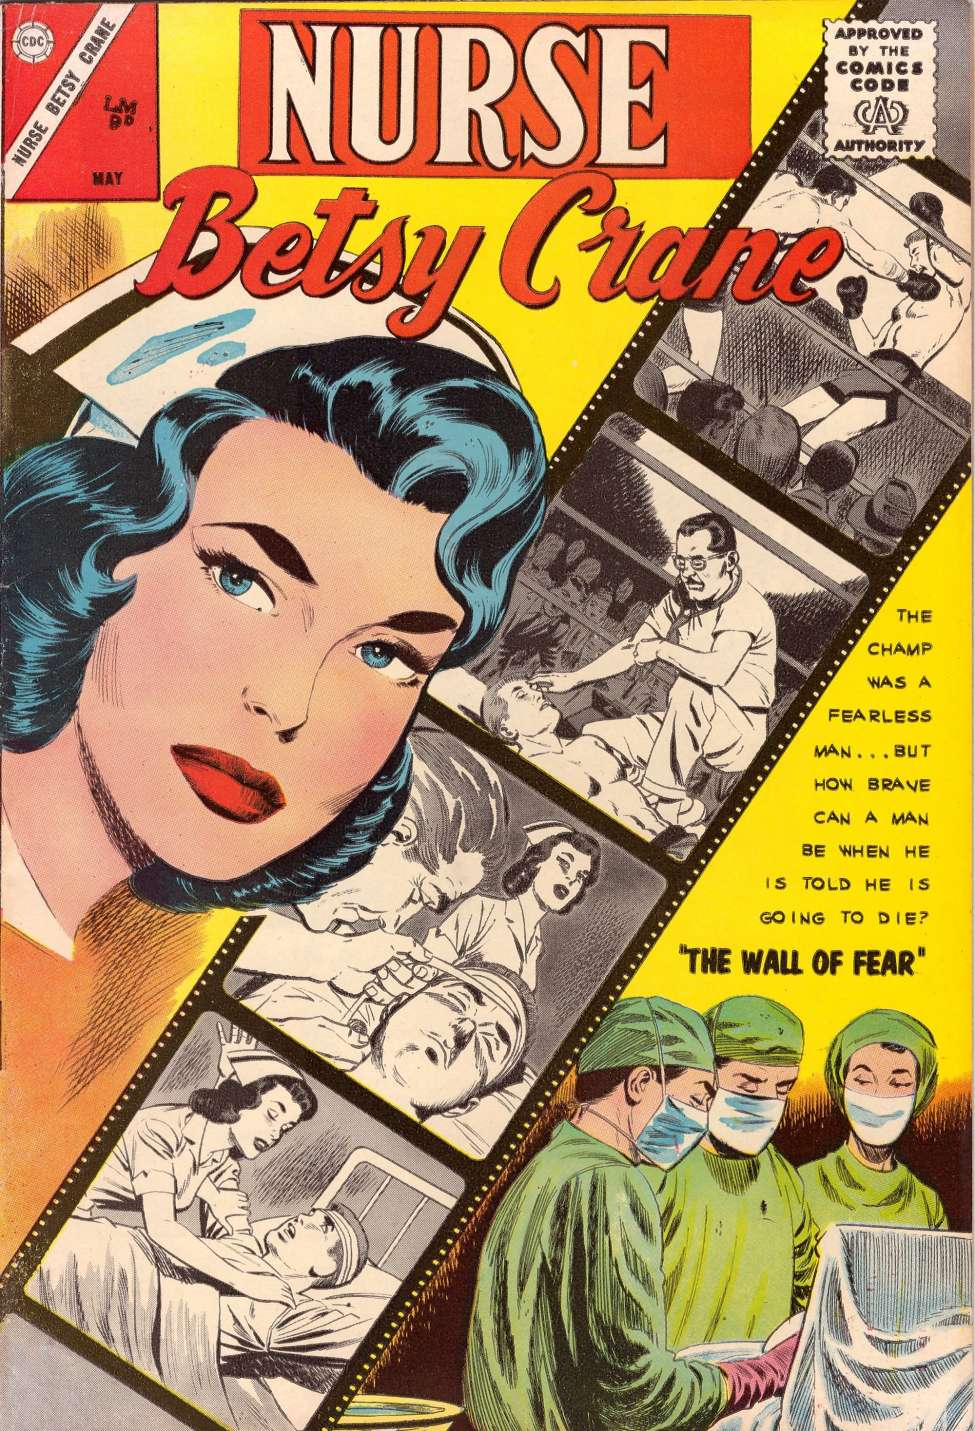 Comic Book Cover For Nurse Betsy Crane #22